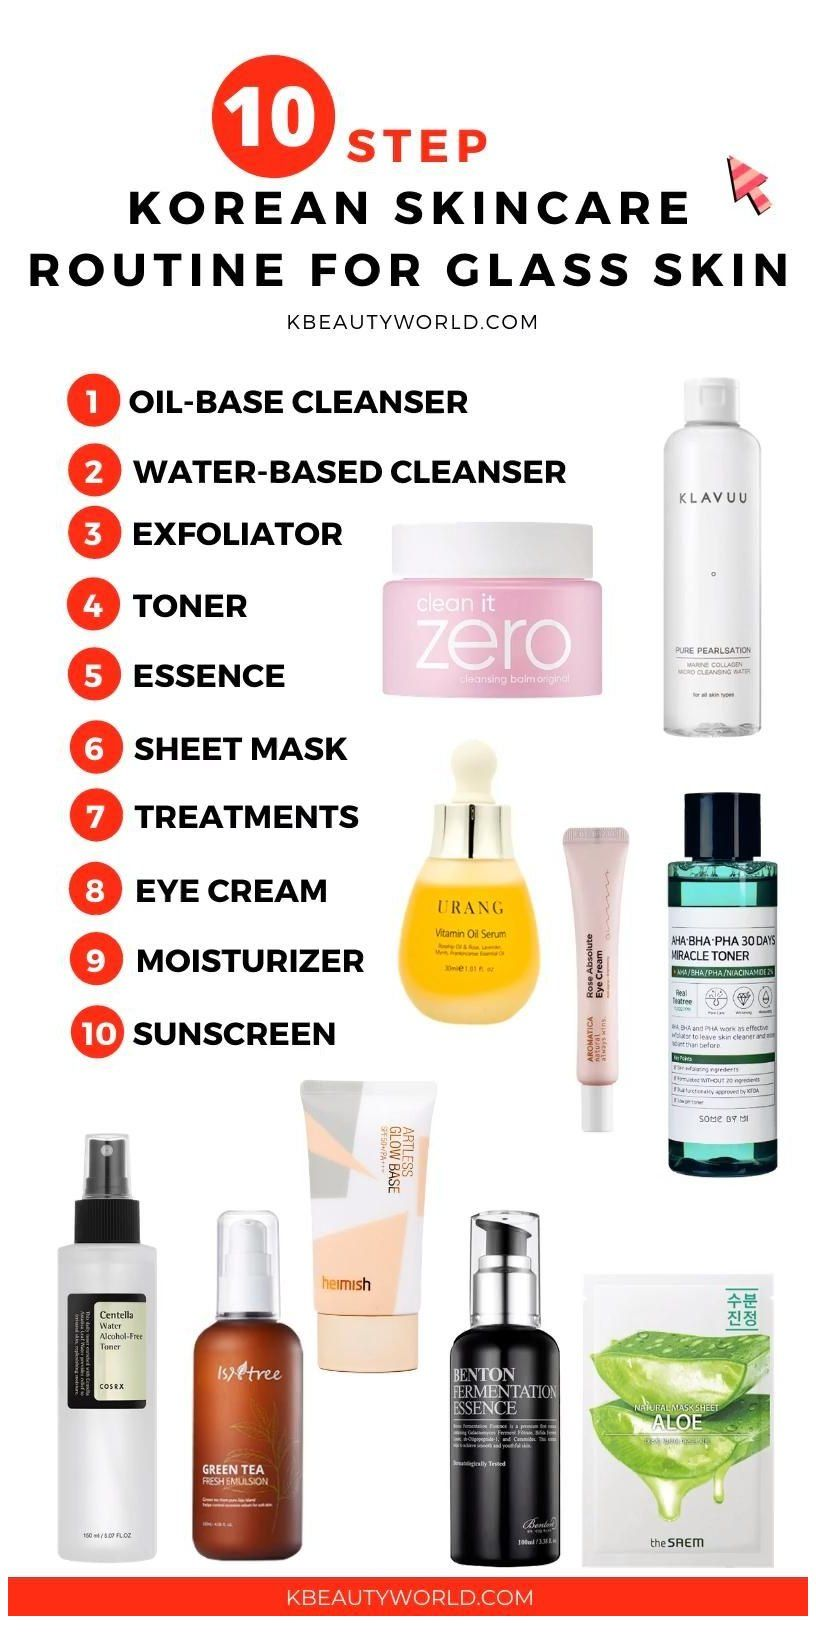 10 Step Korean Skin Care Routine Glass Skin Routine Korean Ever Wonder How Korean Women Get Flawl Skin Care Routine Steps Korean Skincare Skin Care Routine